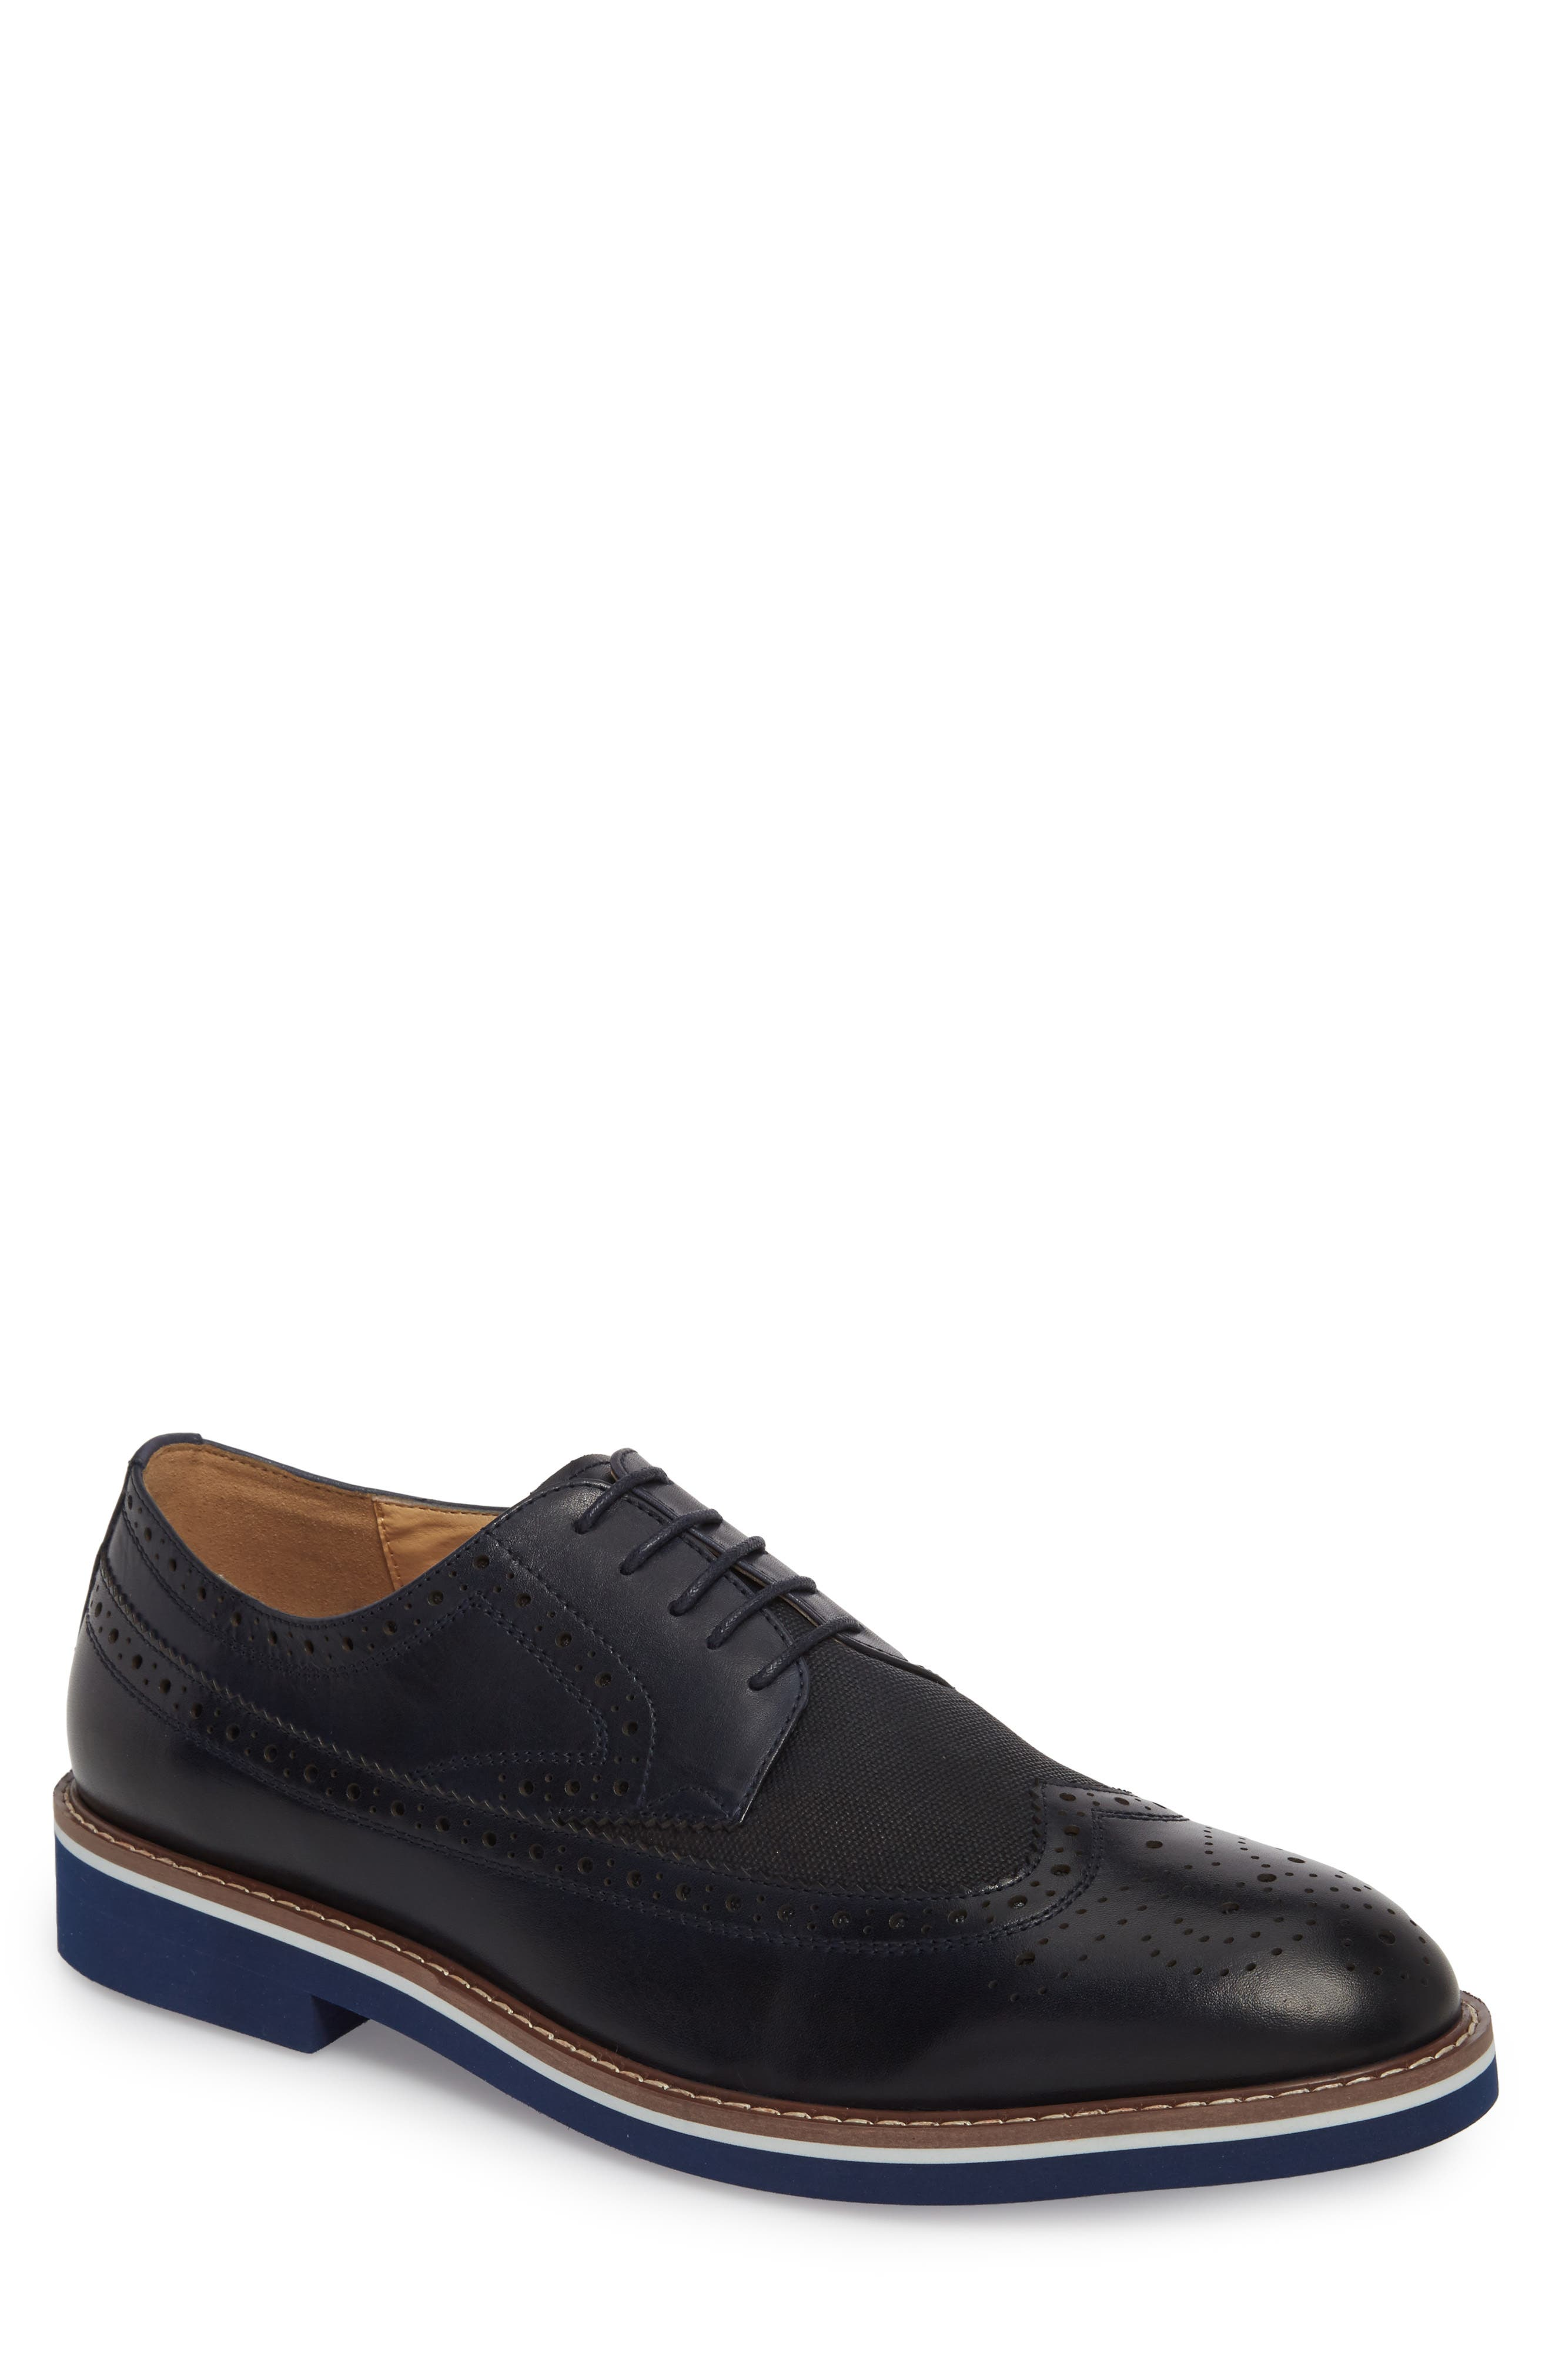 ENGLISH LAUNDRY Balham Wingtip in Navy Leather